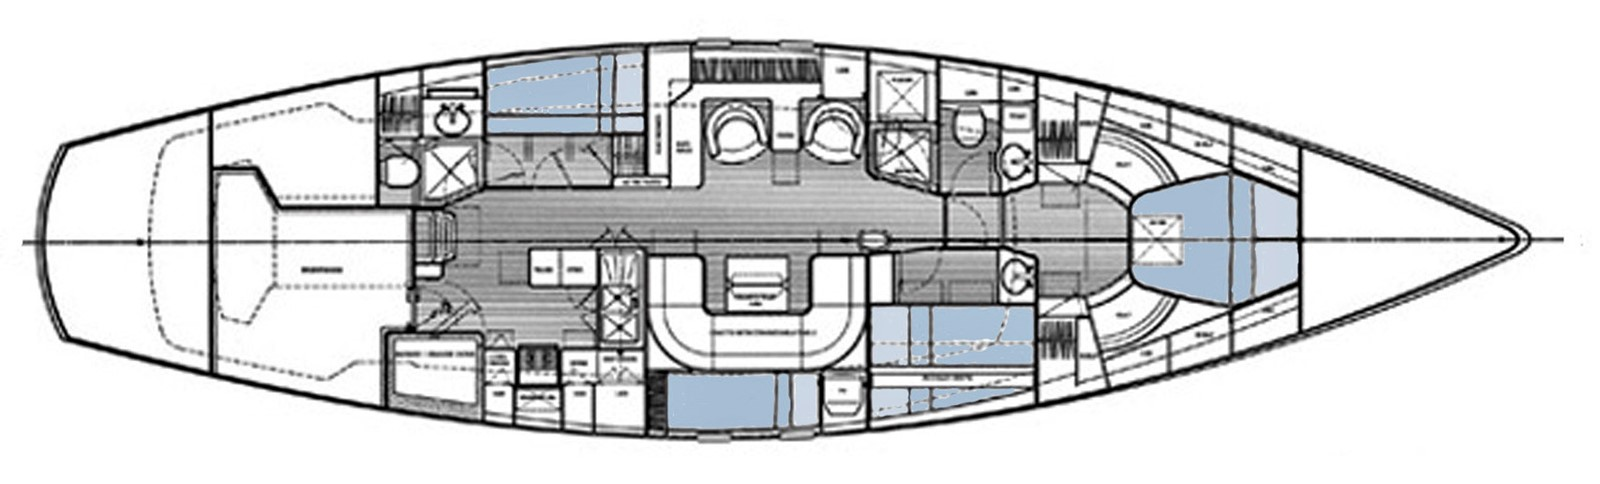 Hood/Lyman-Morse Custom 60 Layout 1999 LYMAN MORSE BOAT CO. Hood Custom 60 Aft Cockpit 2256591